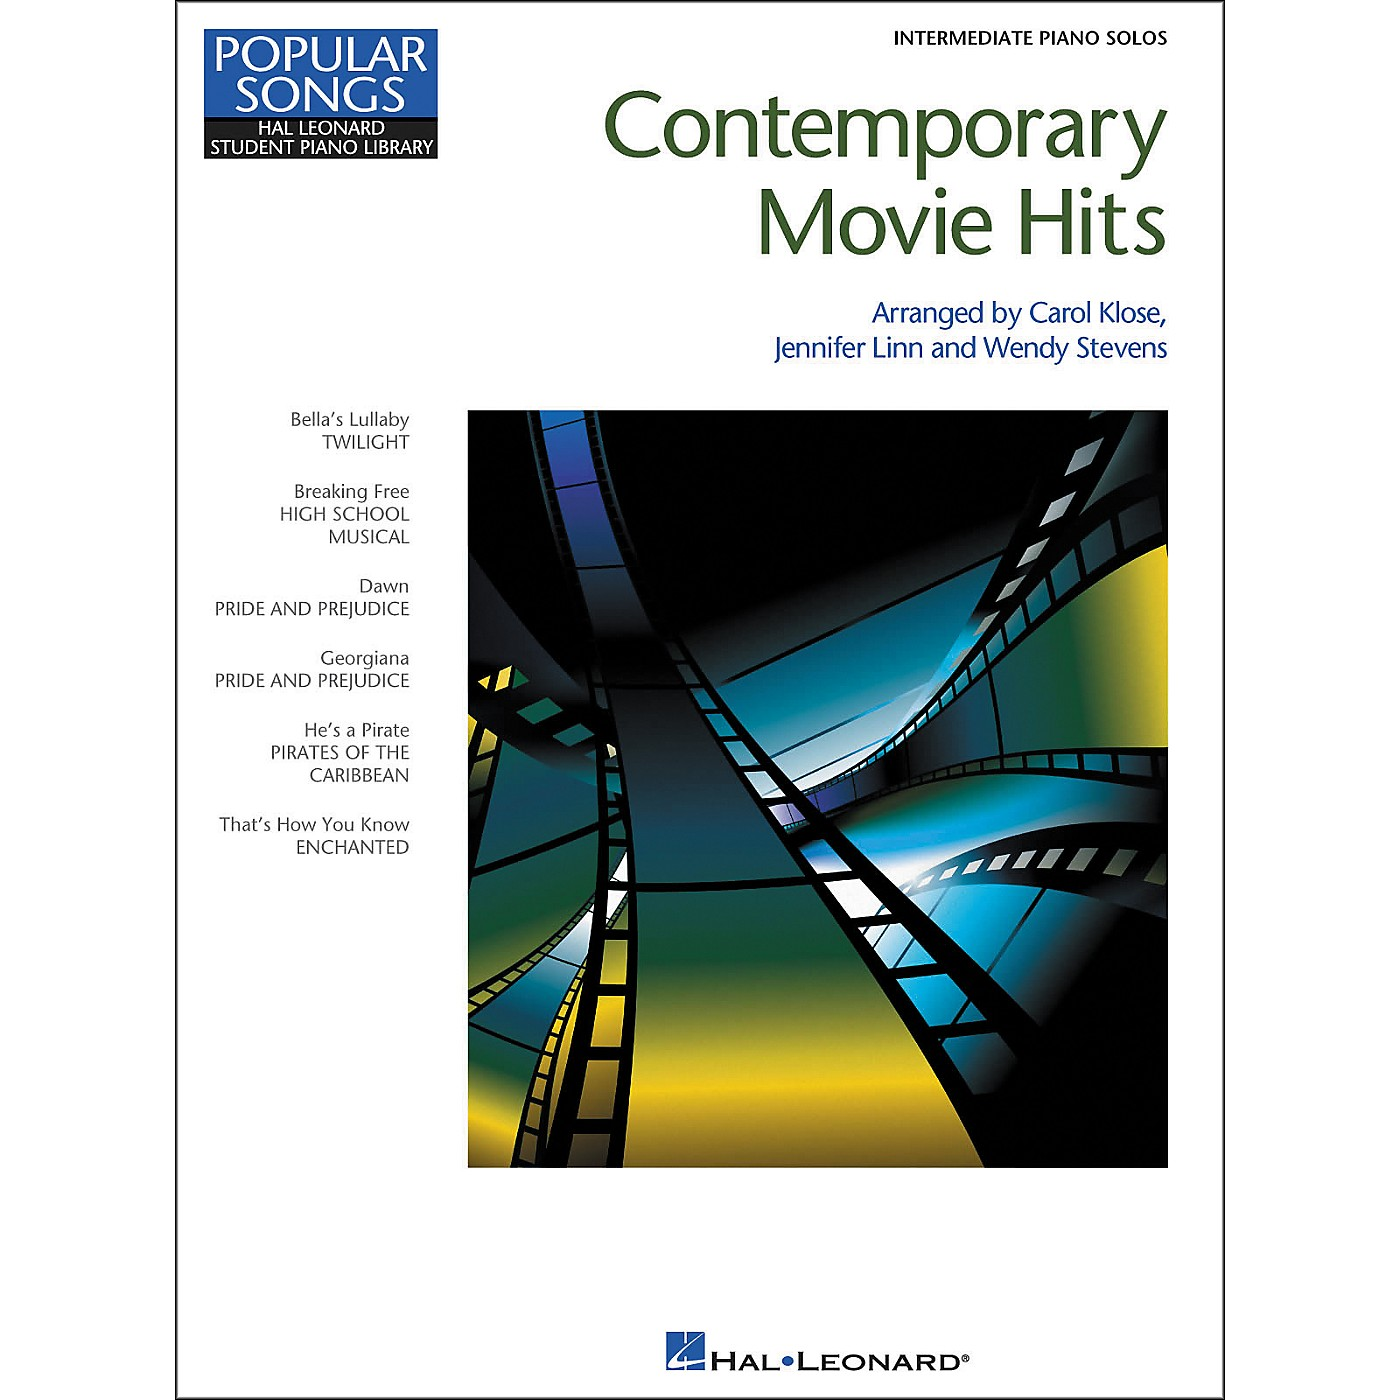 Hal Leonard Contemporary Movie Hits - Hal Leonard Student Piano Library Popular Songs Series - Intermediate Level thumbnail